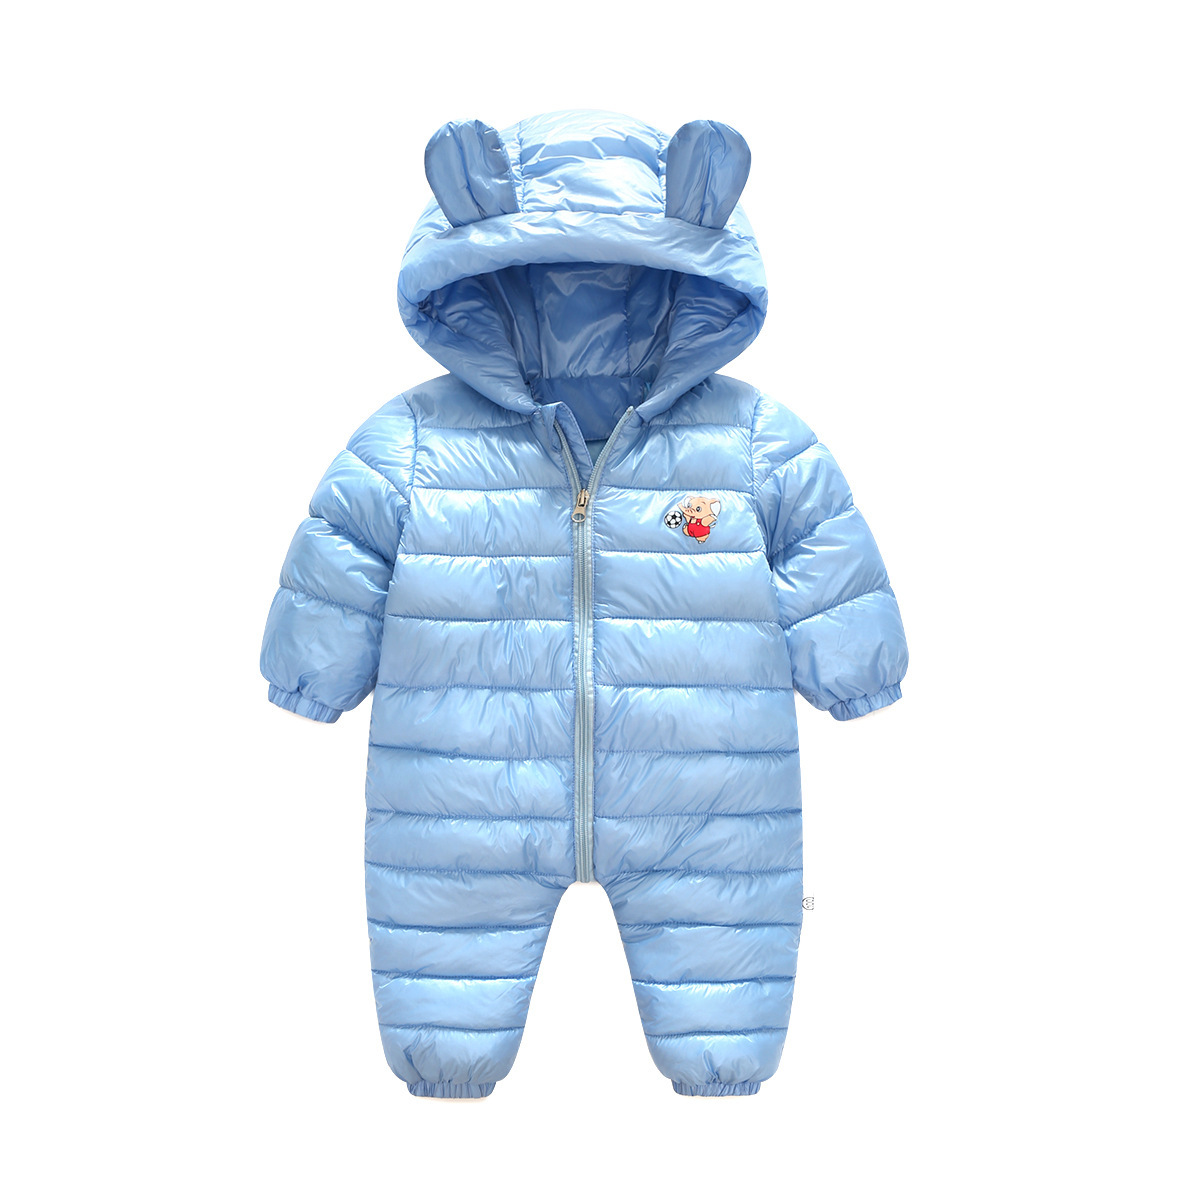 2017 New Arrival Autumn&winter Girls Boys Fashion Down Coat  Kids Hooded Romper Children Jacket Baby Boys Girls Clothes suit moomin 2016 new arrival winter waterproof romper 100